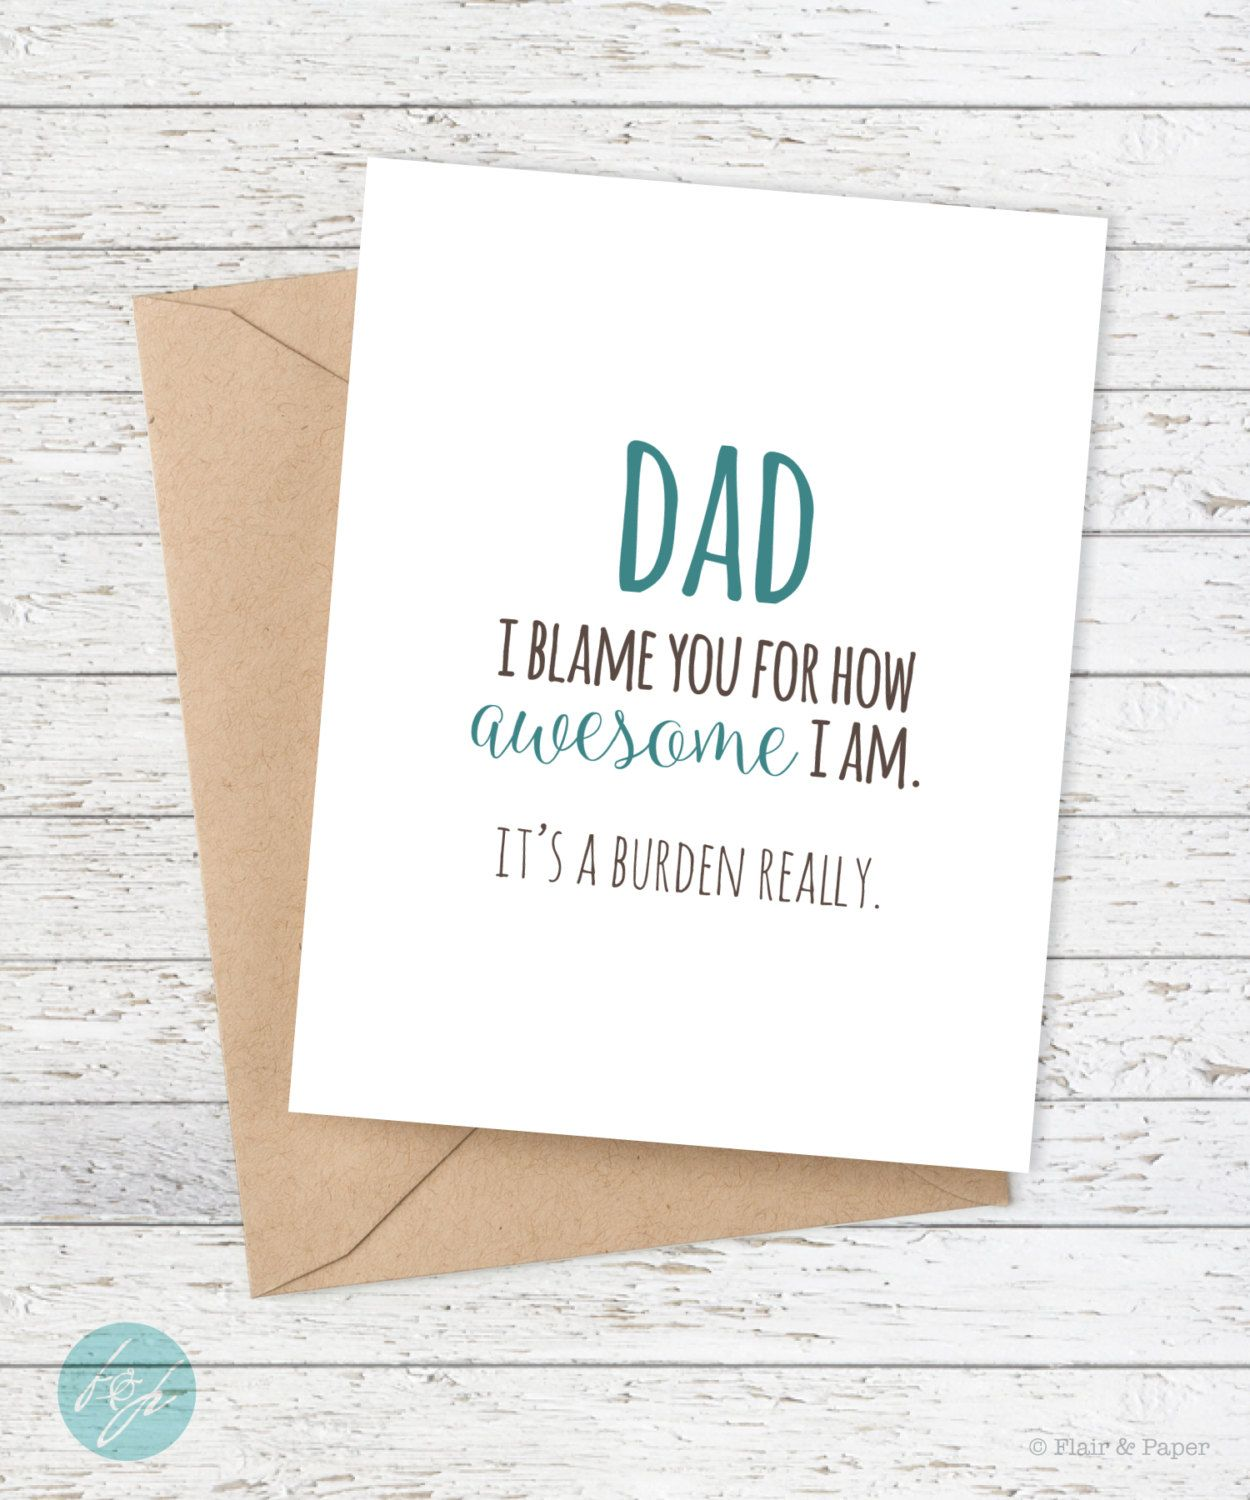 Funny Father 39 S Day Card Dad Birthday Card Dad I Blame You For How Awesome I Am It Dad Birthday Card Cards For Boyfriend Birthday Cards For Boyfriend